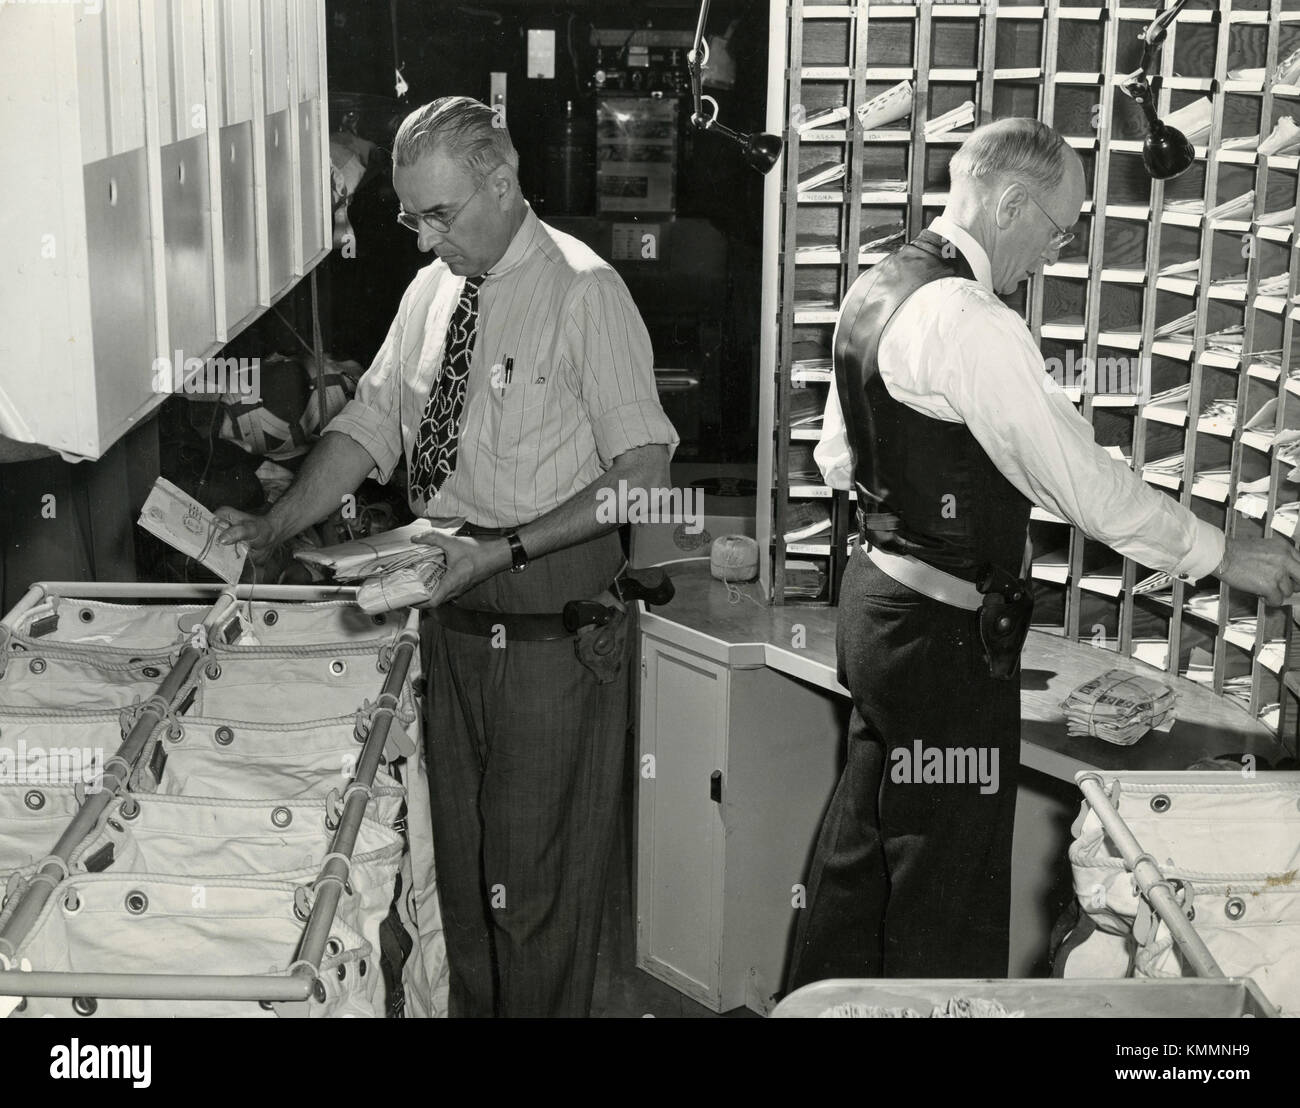 Inside the aircraft Fairchild C-82 Packet two postal service clerks sort the mails, USA 1940s - Stock Image